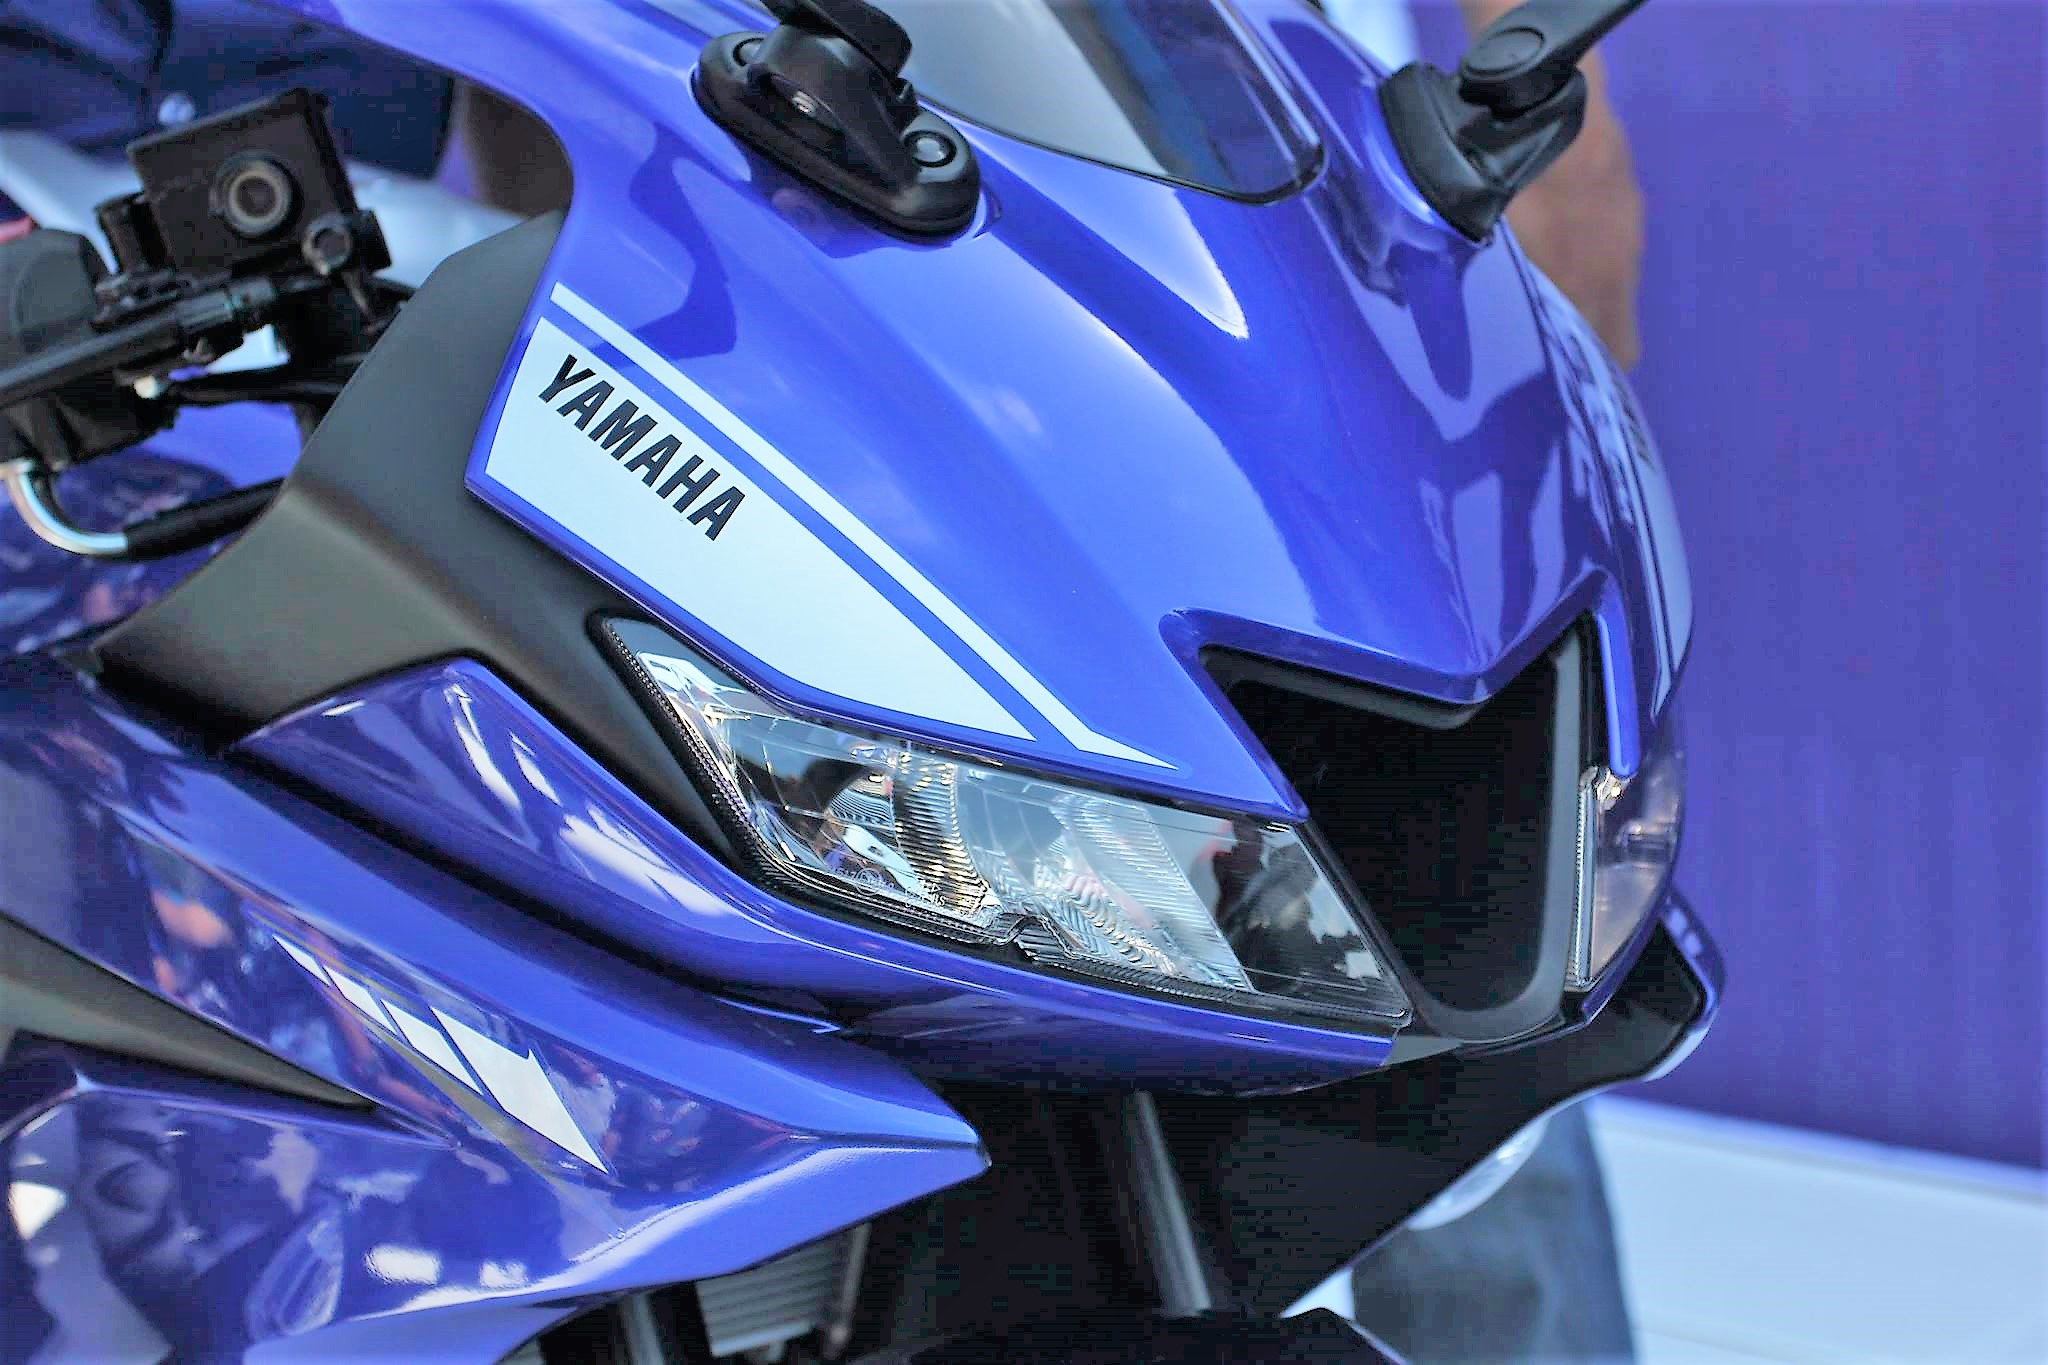 Mega Photo Gallery of Yamaha R15 Version 3 | Official Specs & Shades Updated